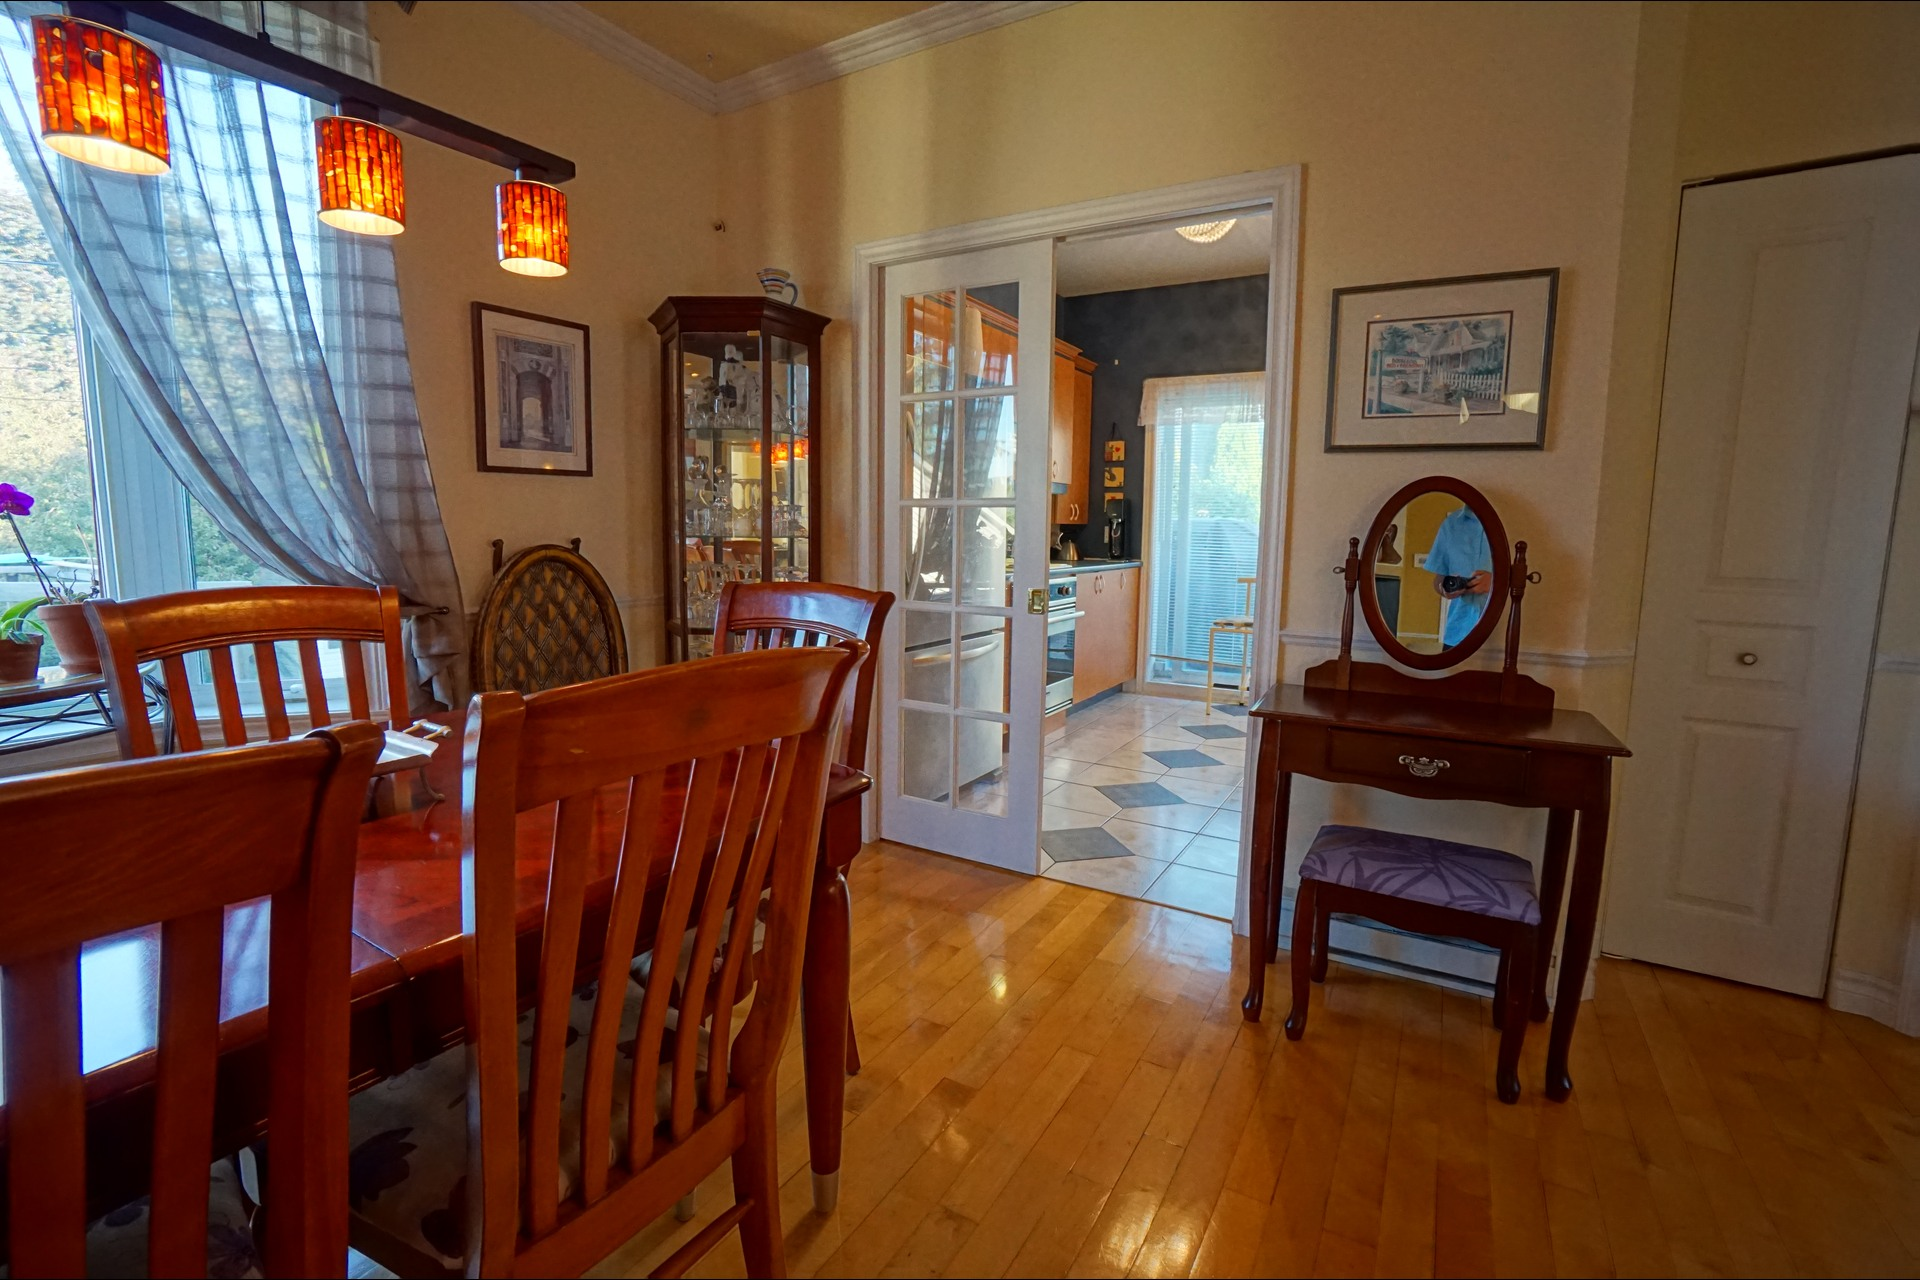 image 5 - Bungalow - For sale - Laval   - 11 rooms